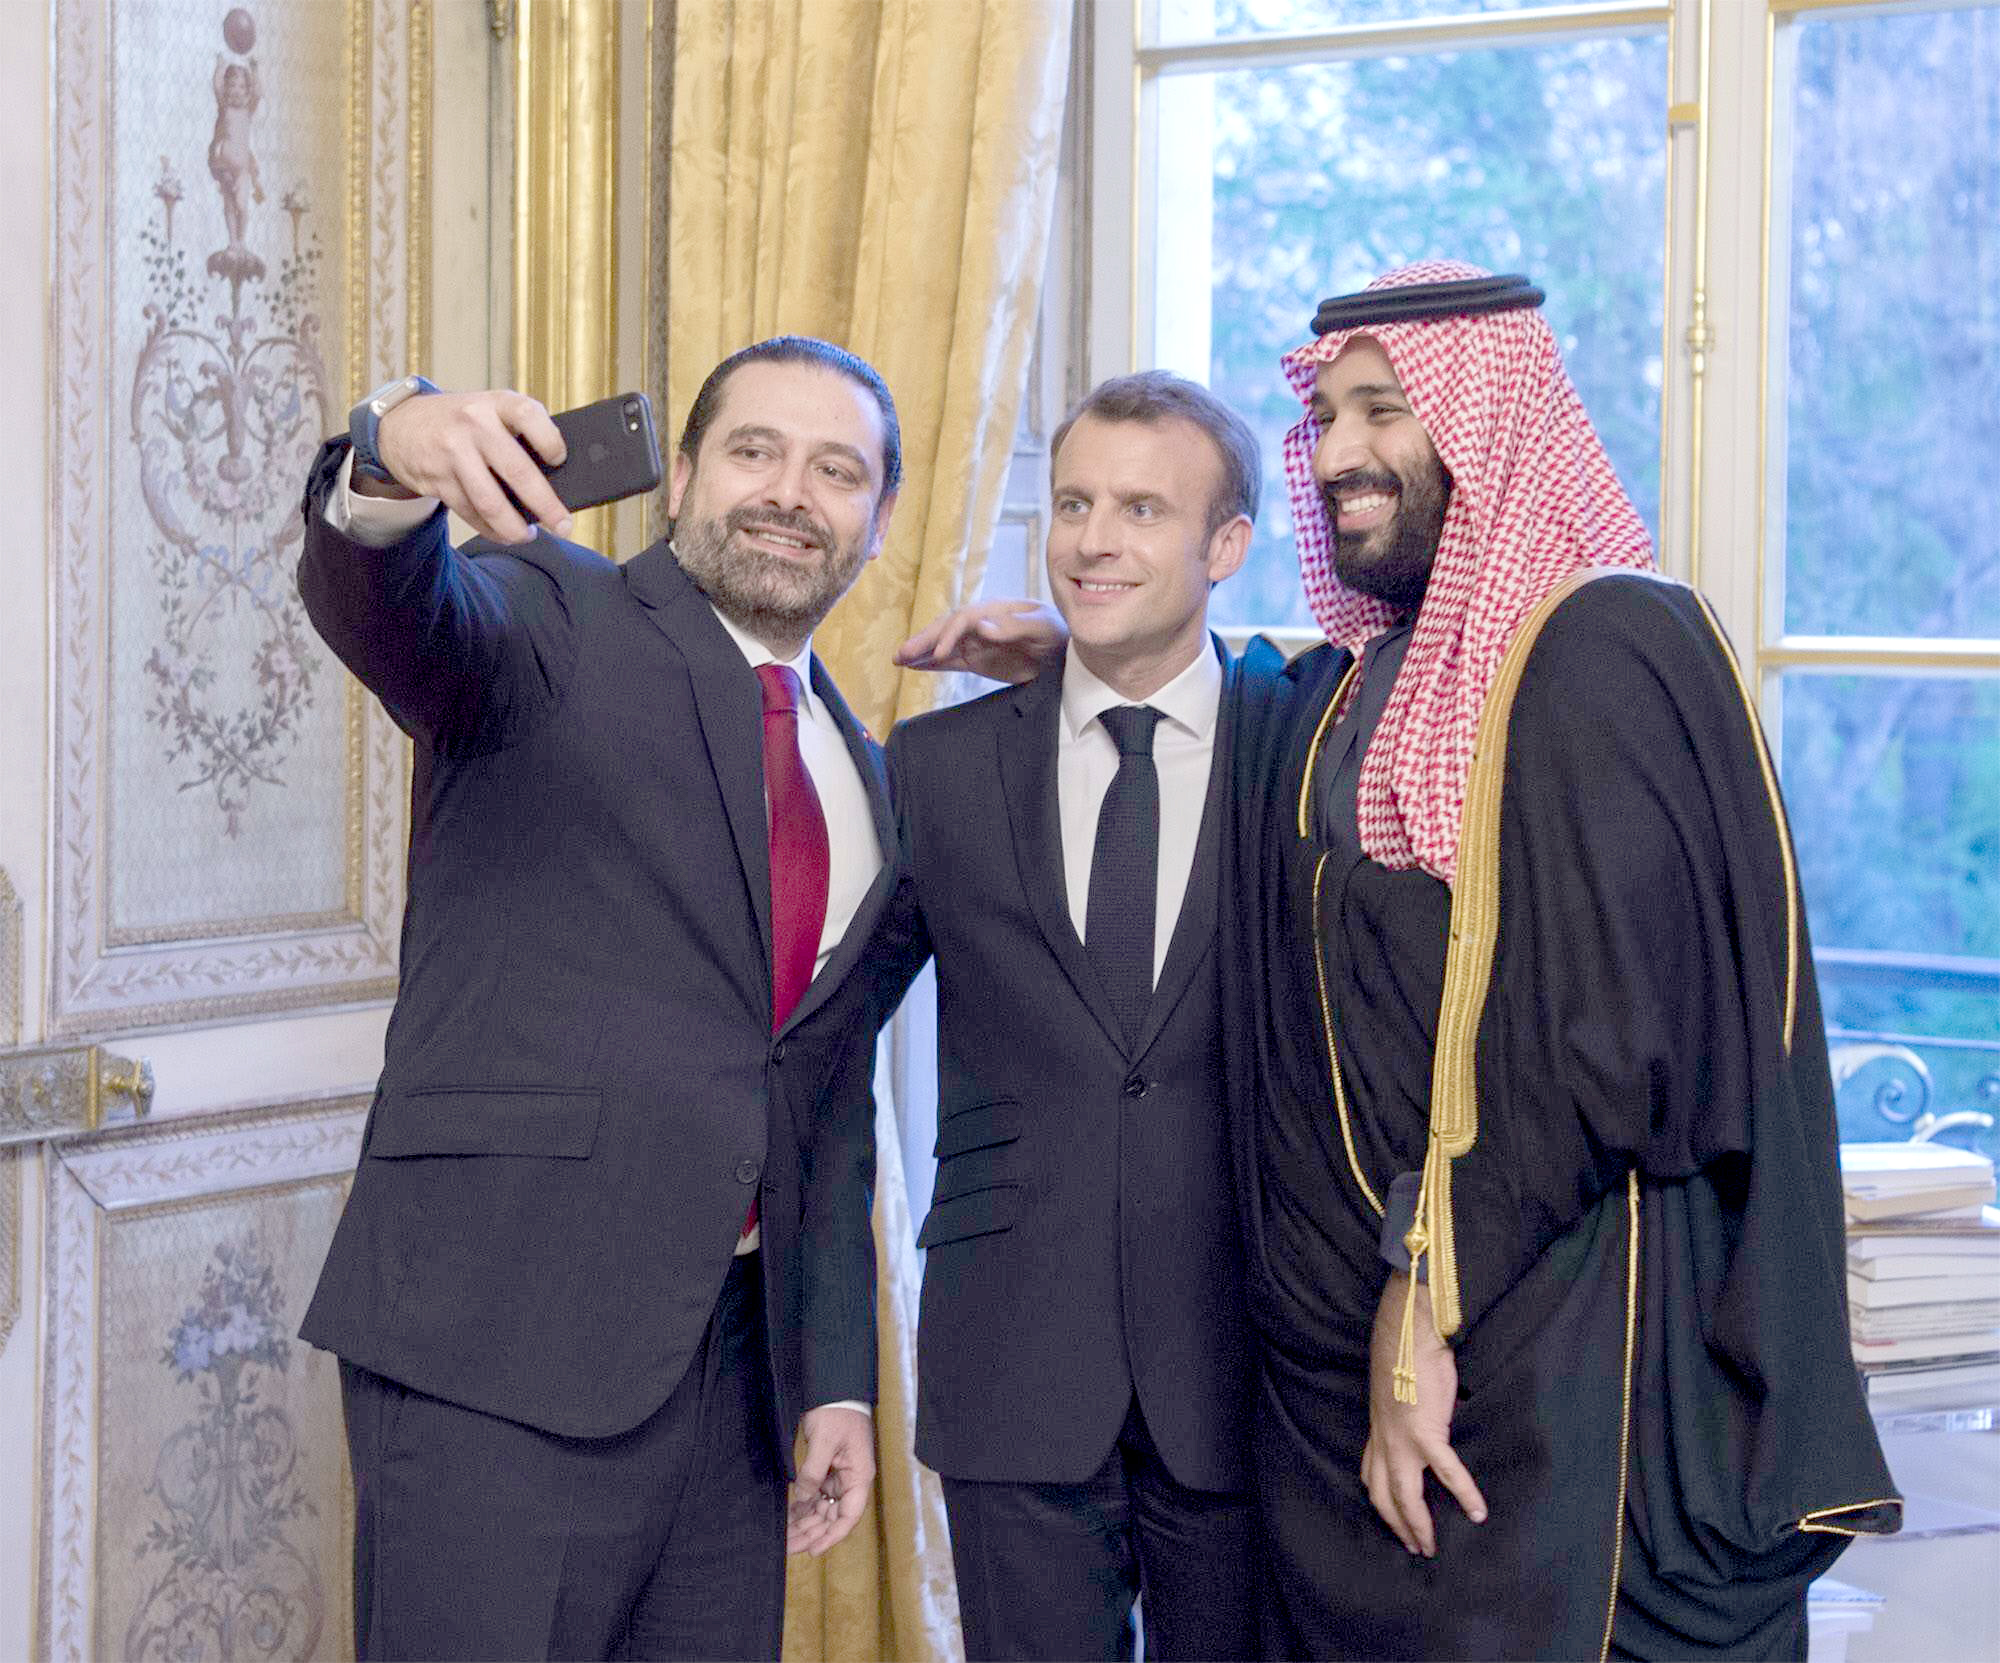 French President Emmanuel Macron (C) and Saudi Crown Prince Mohammed bin Salman bin Abdulaziz (R) pose next to Lebanese Prime Minister Saad Hariri in Paris, on April 10. (AFP)